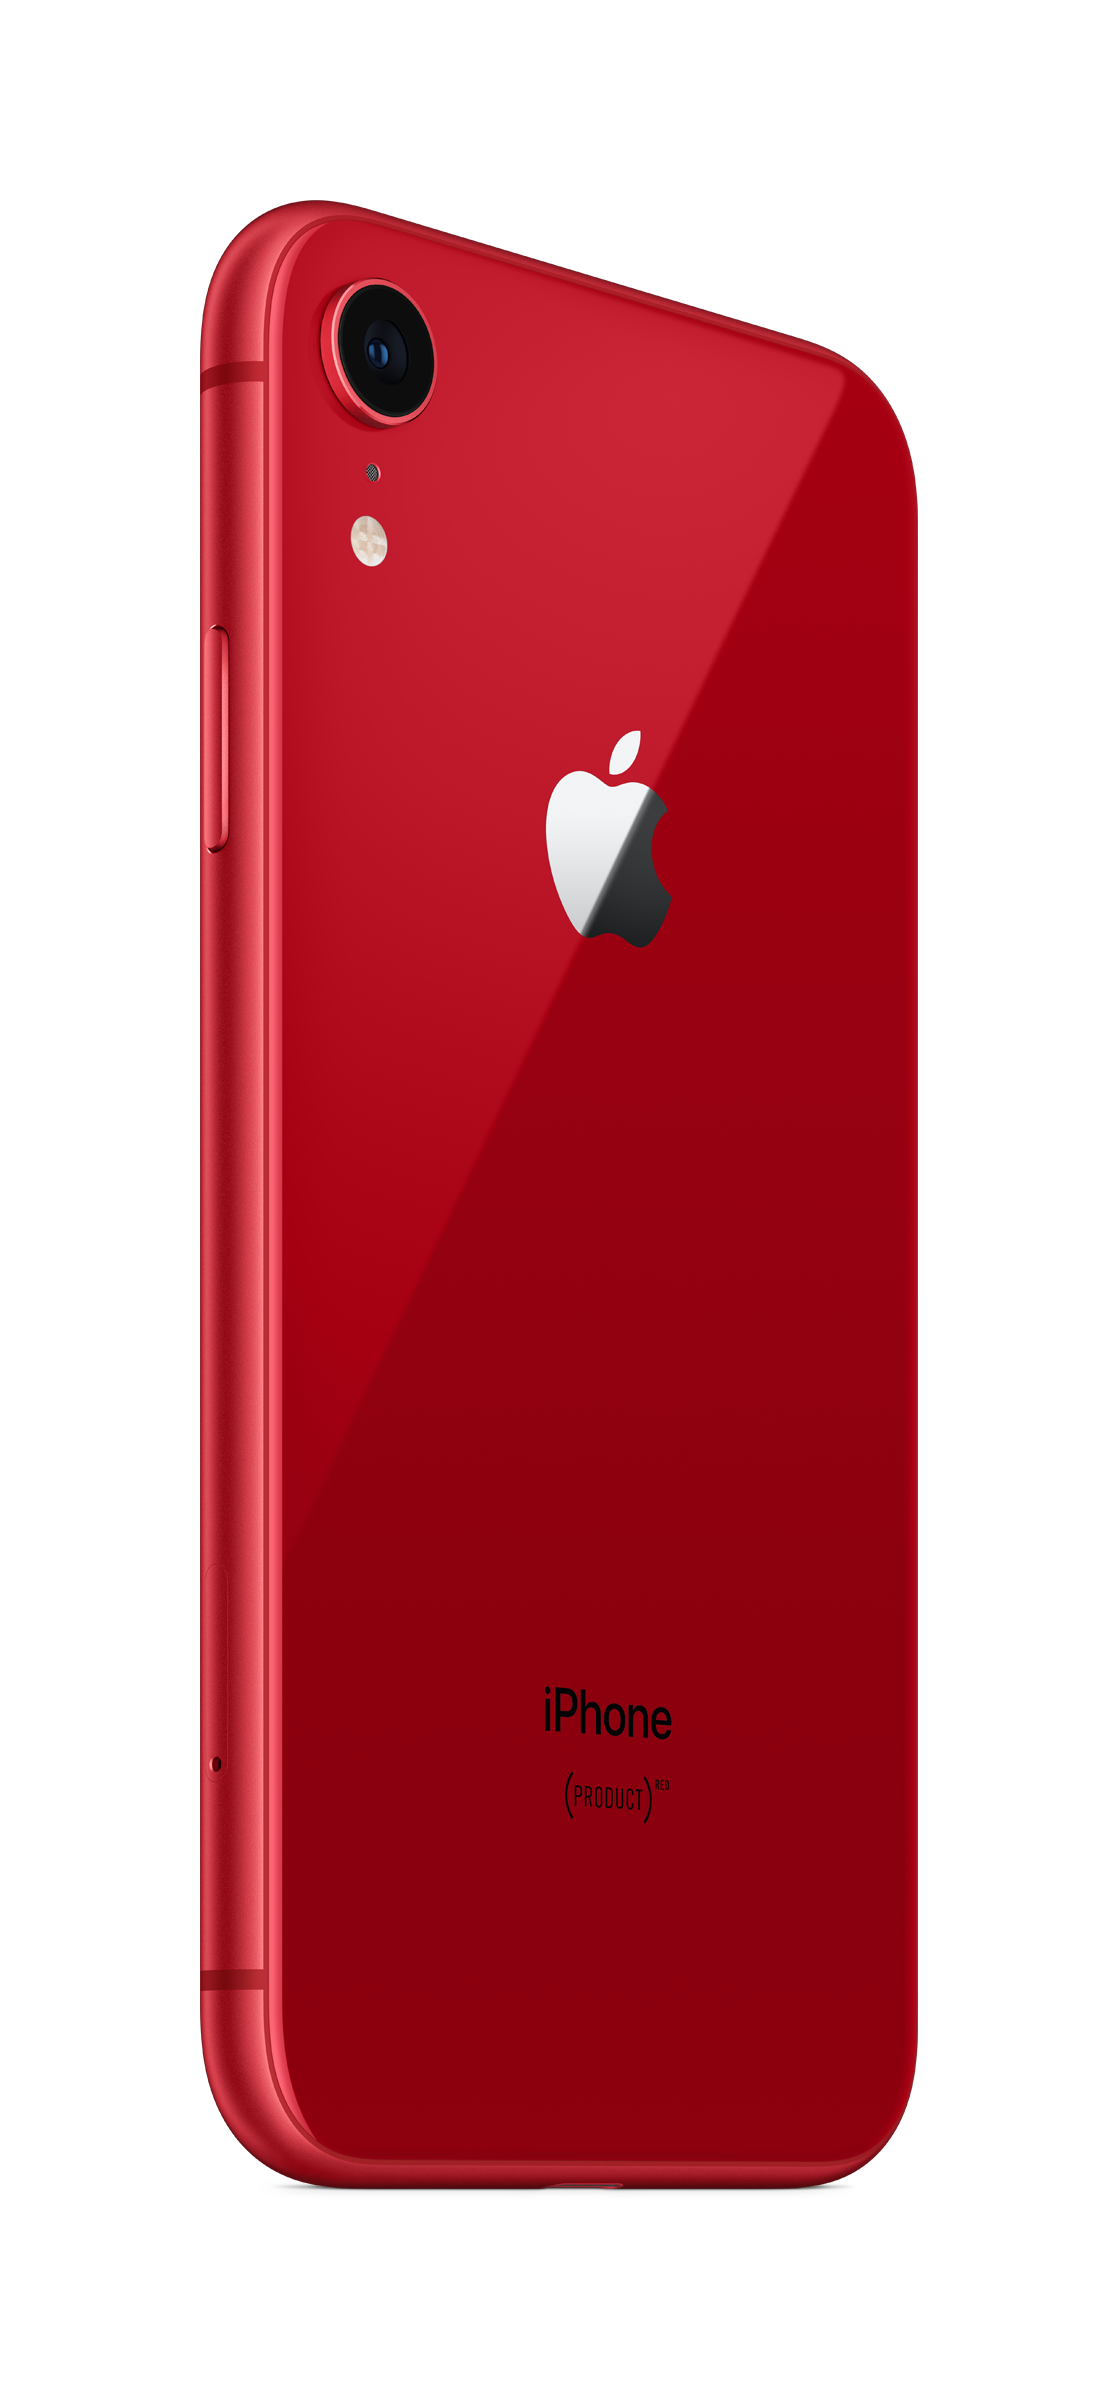 Apple says iPhone XR is 'best-selling' iPhone, as it ... - iPhone X Red